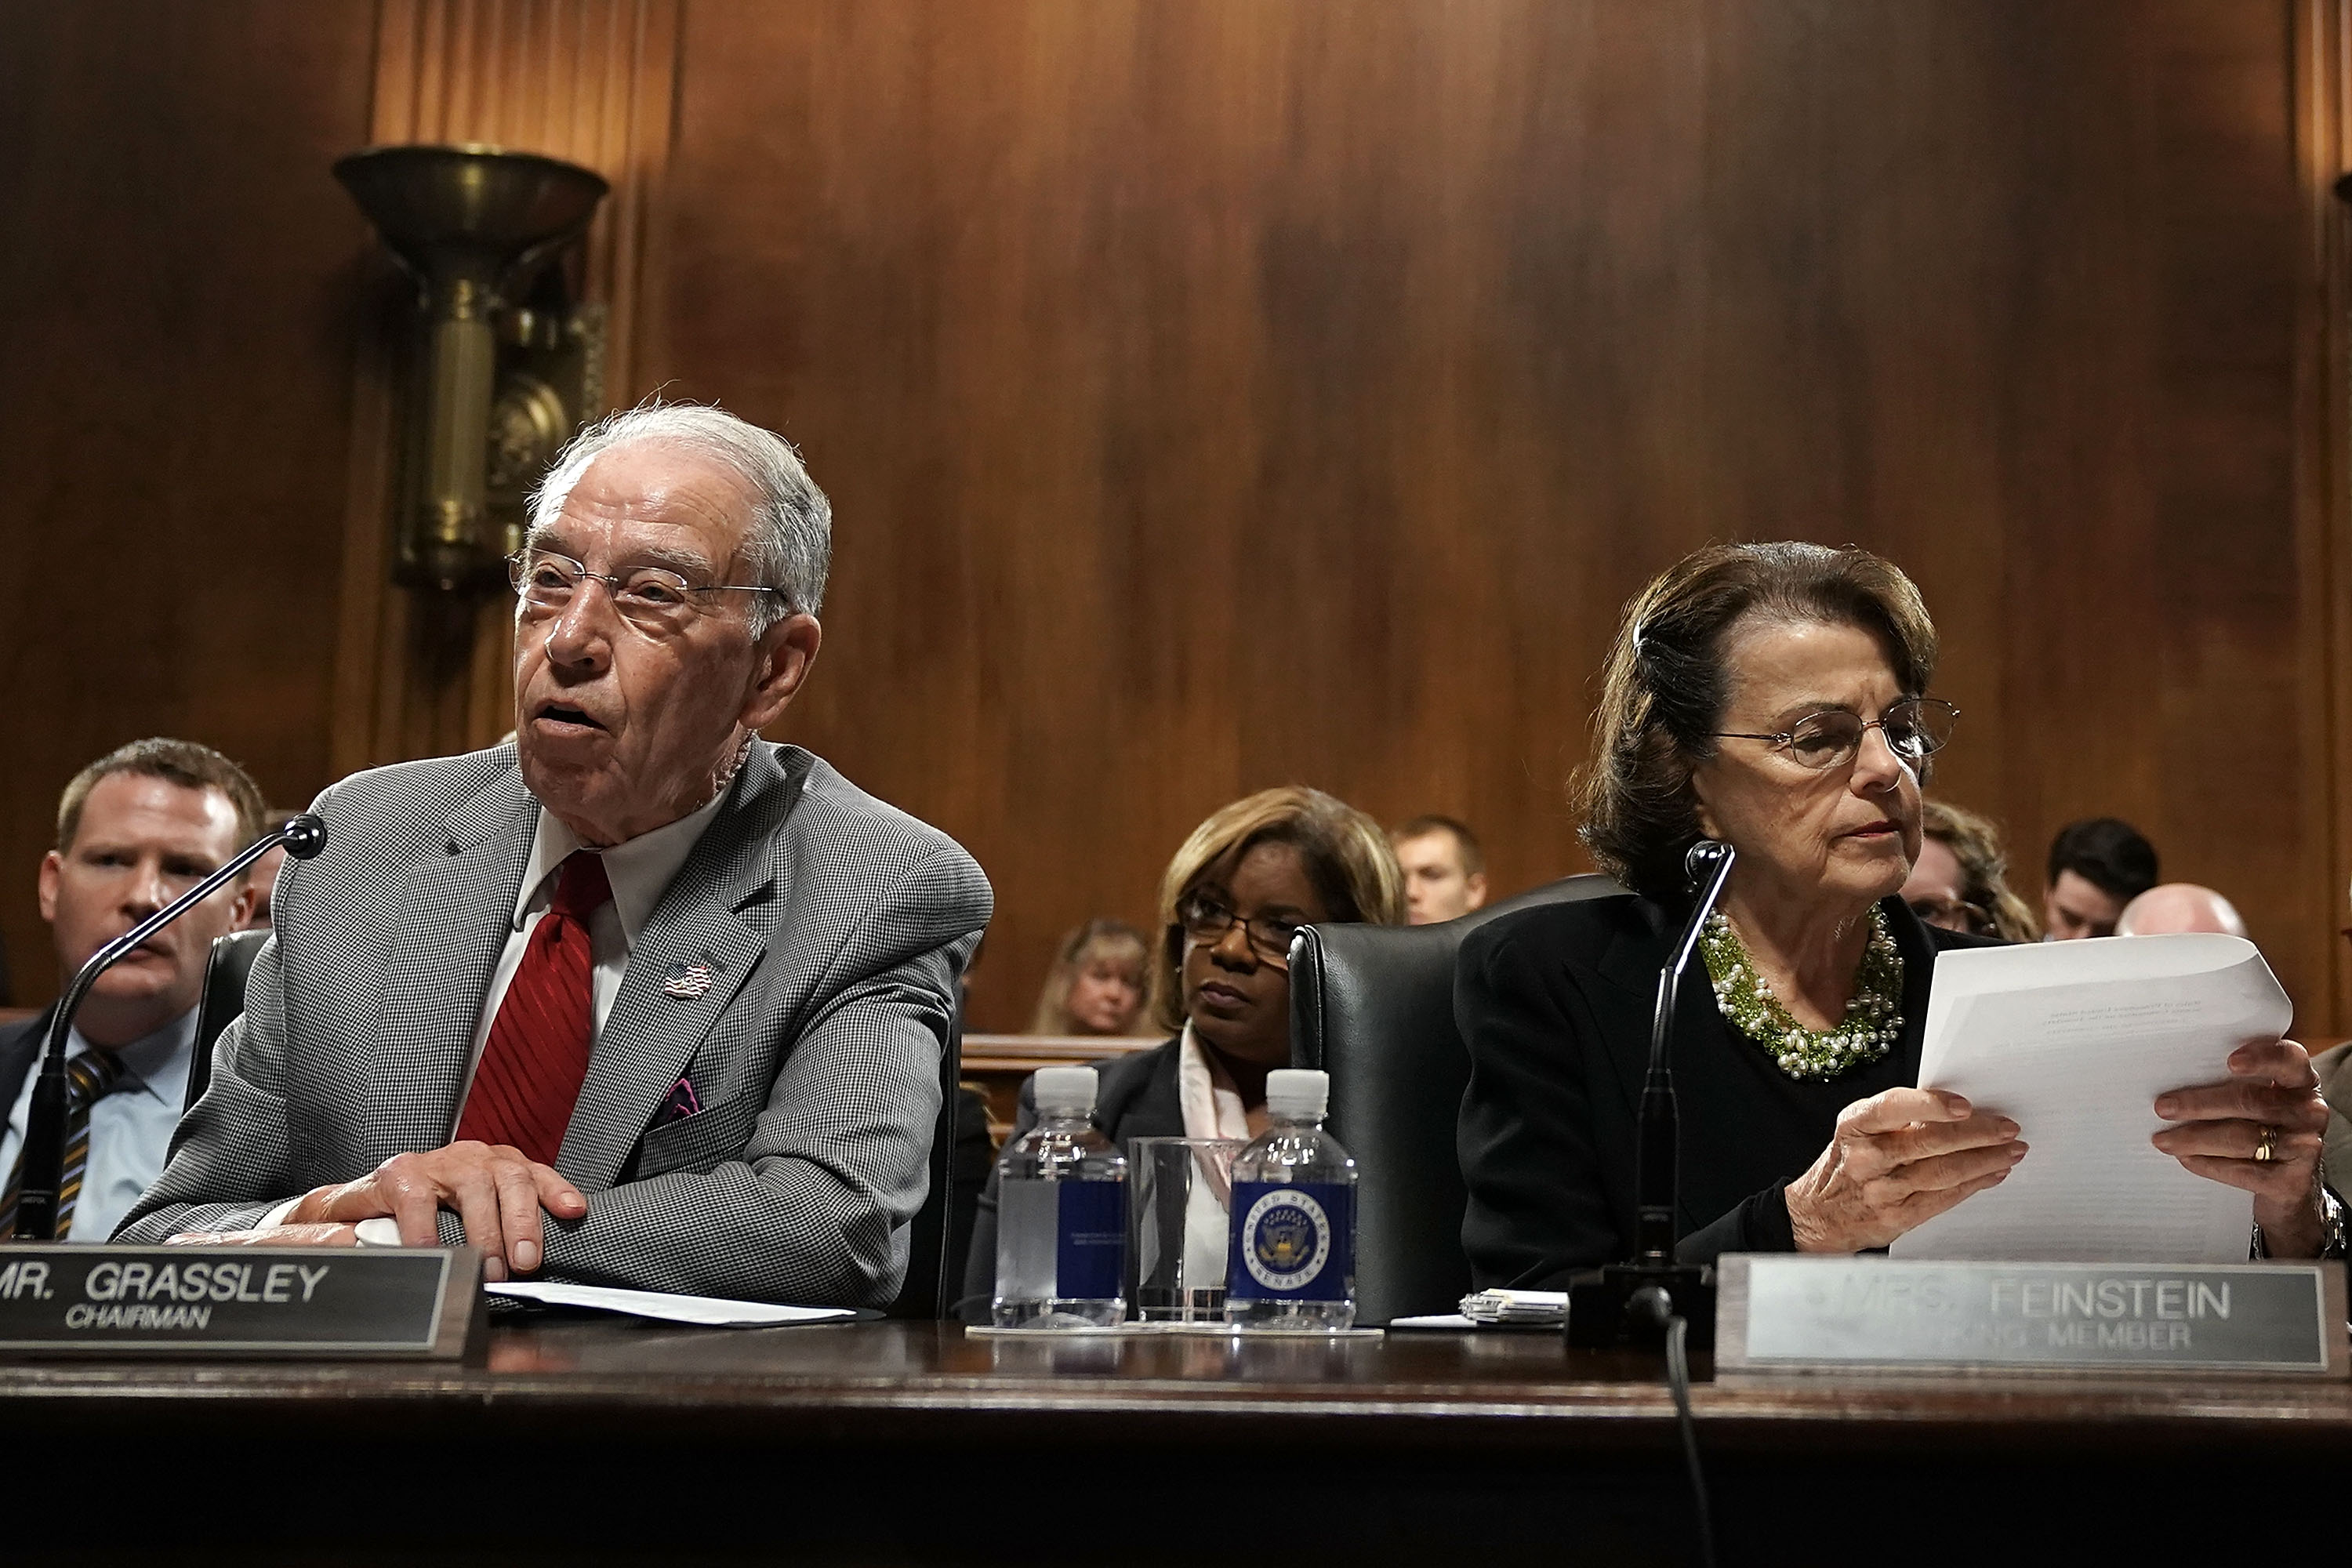 Committee Chairman U.S. Sen. Chuck Grassley (R-IA) (L) speaks as ranking member Sen. Dianne Feinstein (D-CA) (R) listens during a markup hearing before the Senate Judiciary Committee September 13, 2018 on Capitol Hill in Washington, DC. A request during the hearing by the Democrats to subpoena documents on Supreme Court nominee Brett KavanaughÕs job as staff secretary in the George W. Bush administration was rejected by the Republicans. Chairman Grassley announced that the committee will hold its final vote on the nomination on September 20, 2018. (Alex Wong/Getty Images)